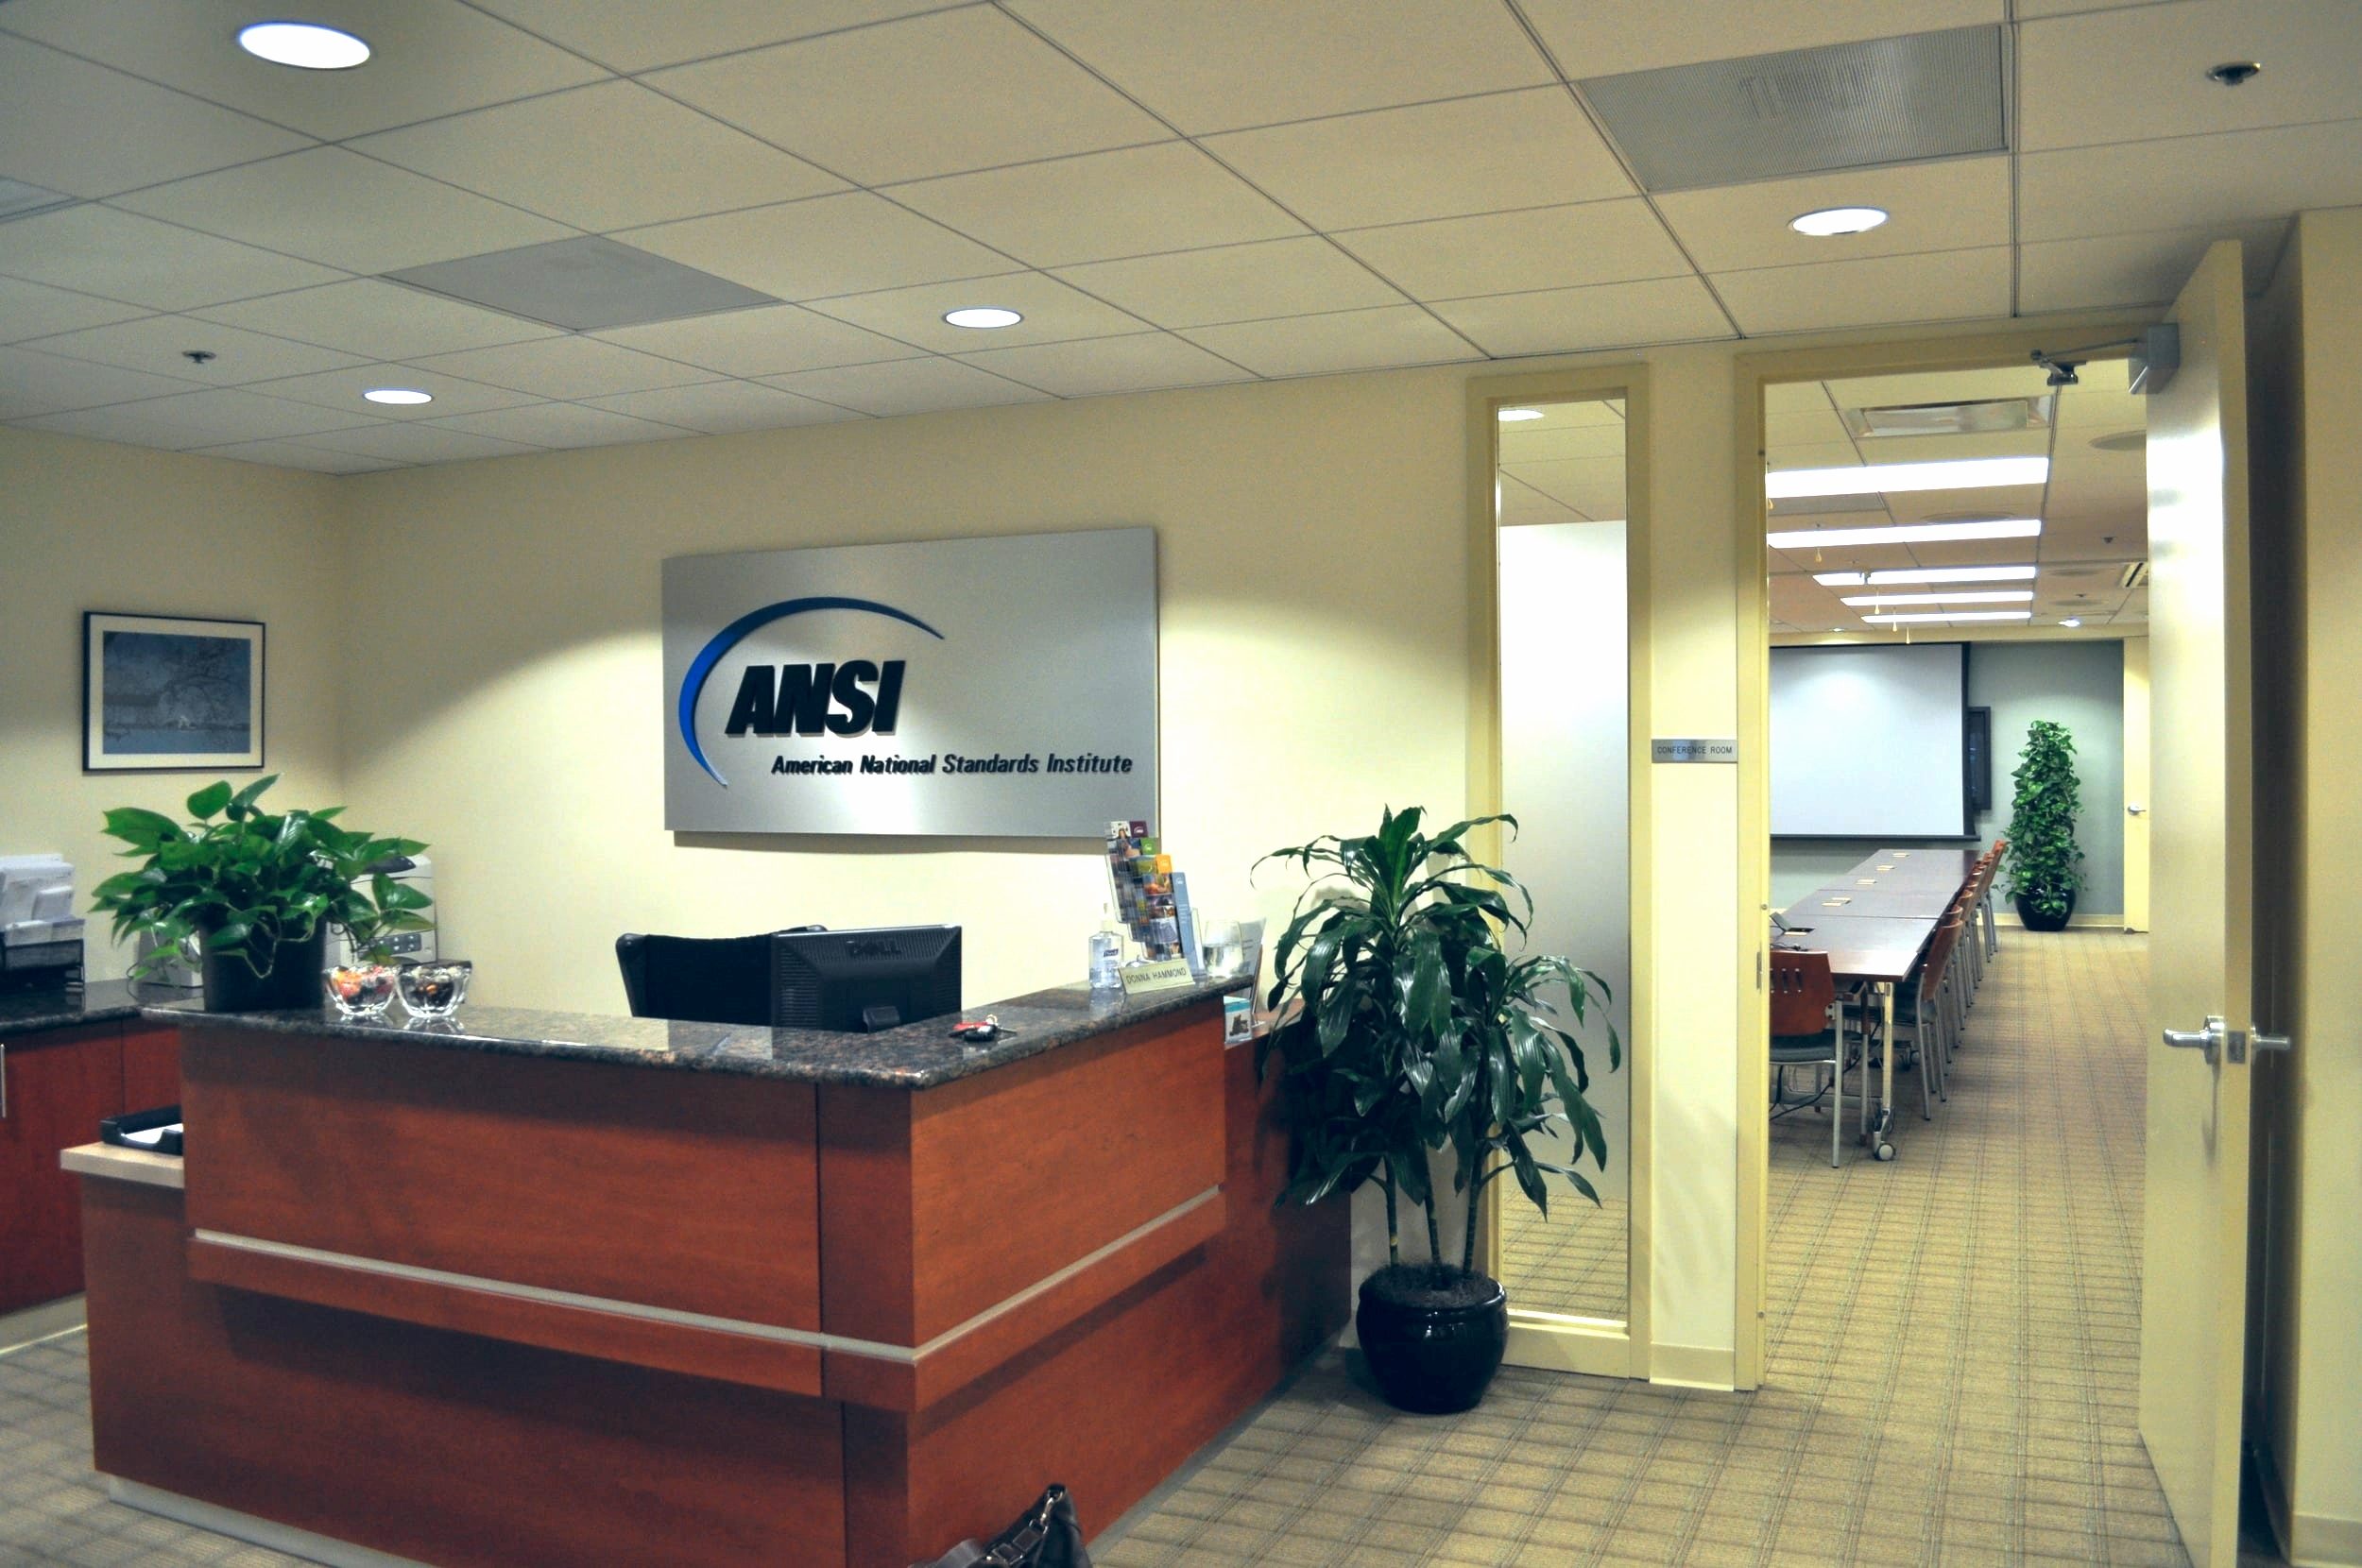 ANSI Headquarters Renovation